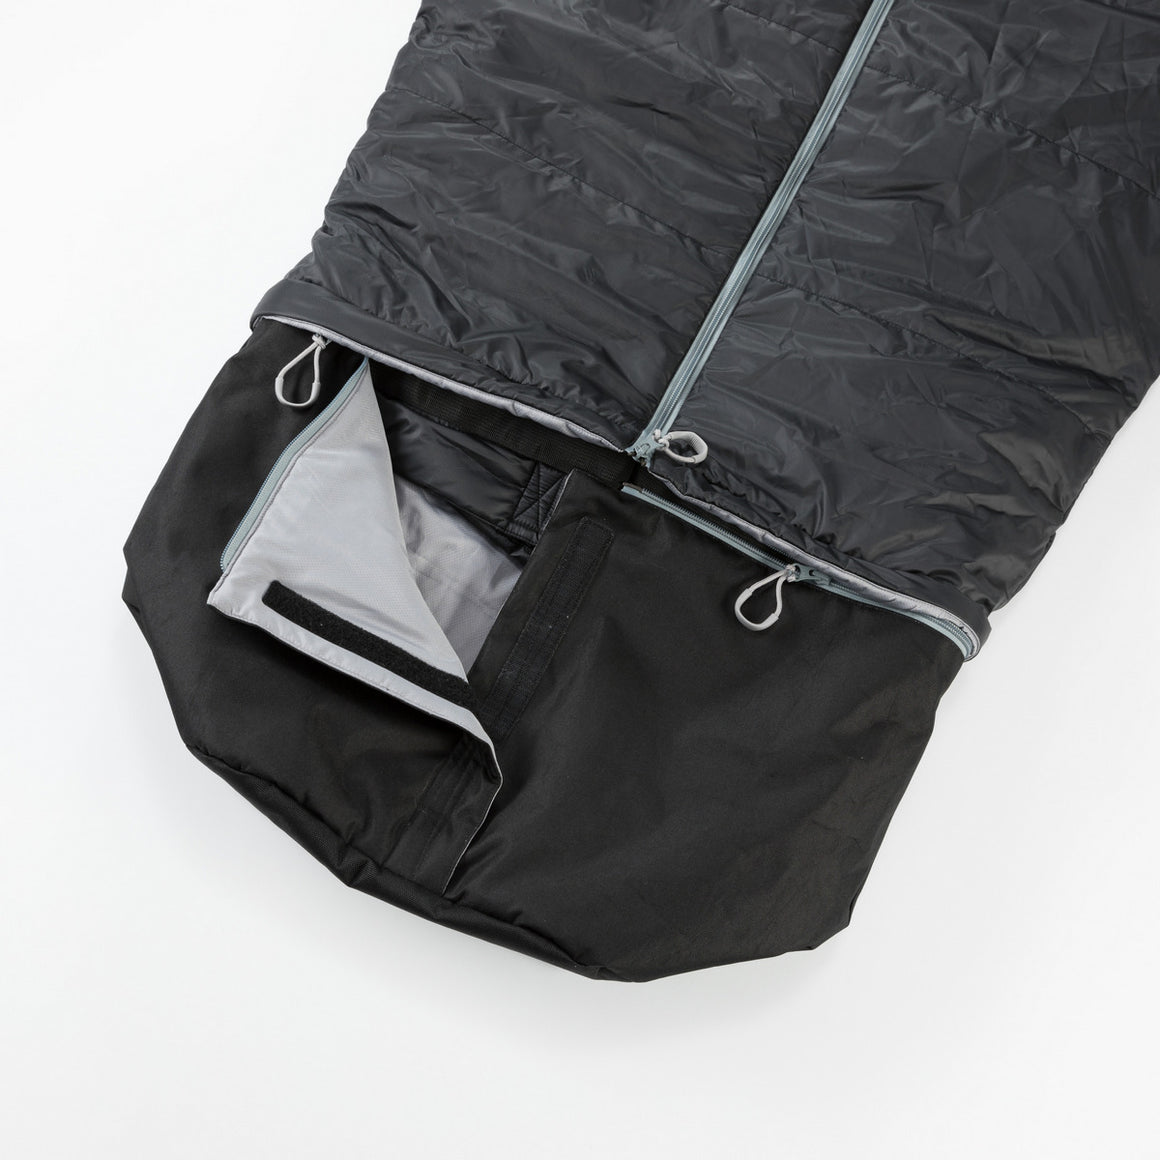 CozyBag Zippy by Bergstop: extra large wearable sleeping bag